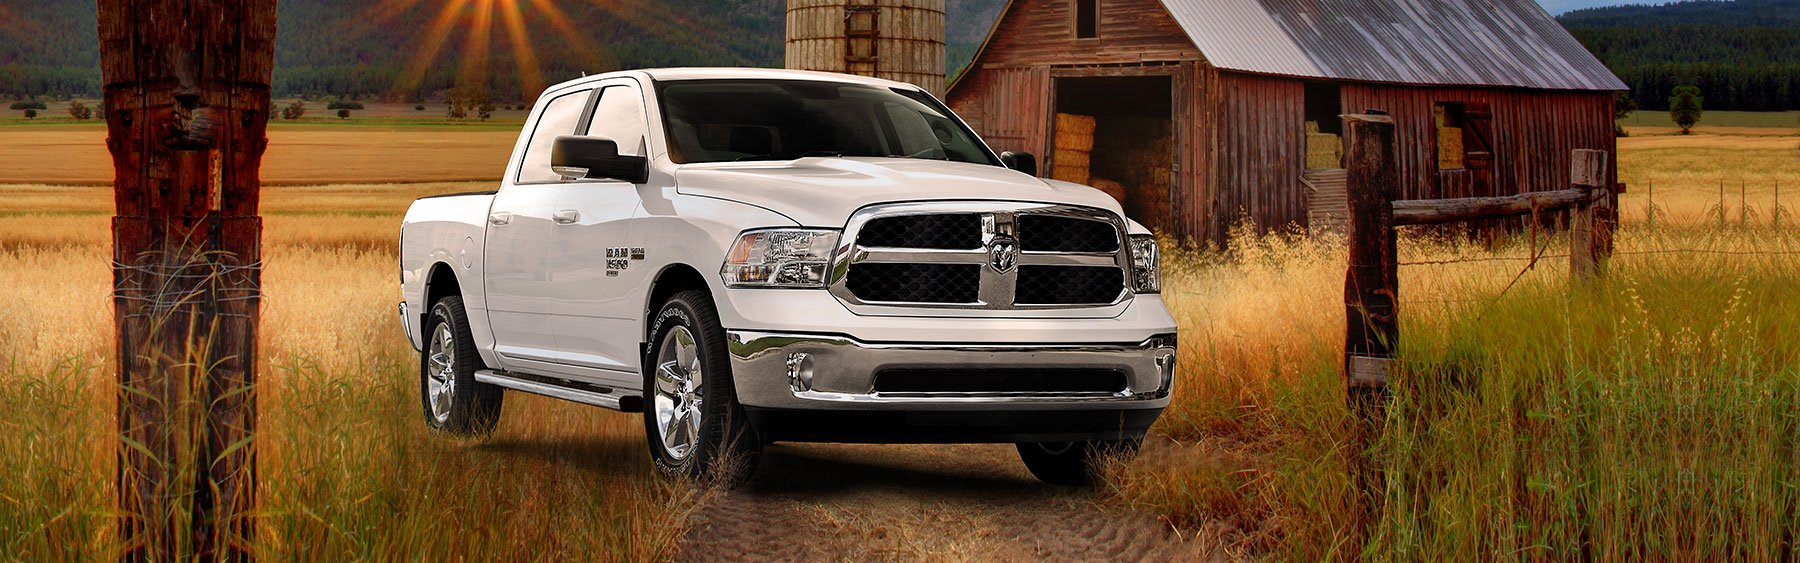 2019 dodge ram truck 1500 white on field